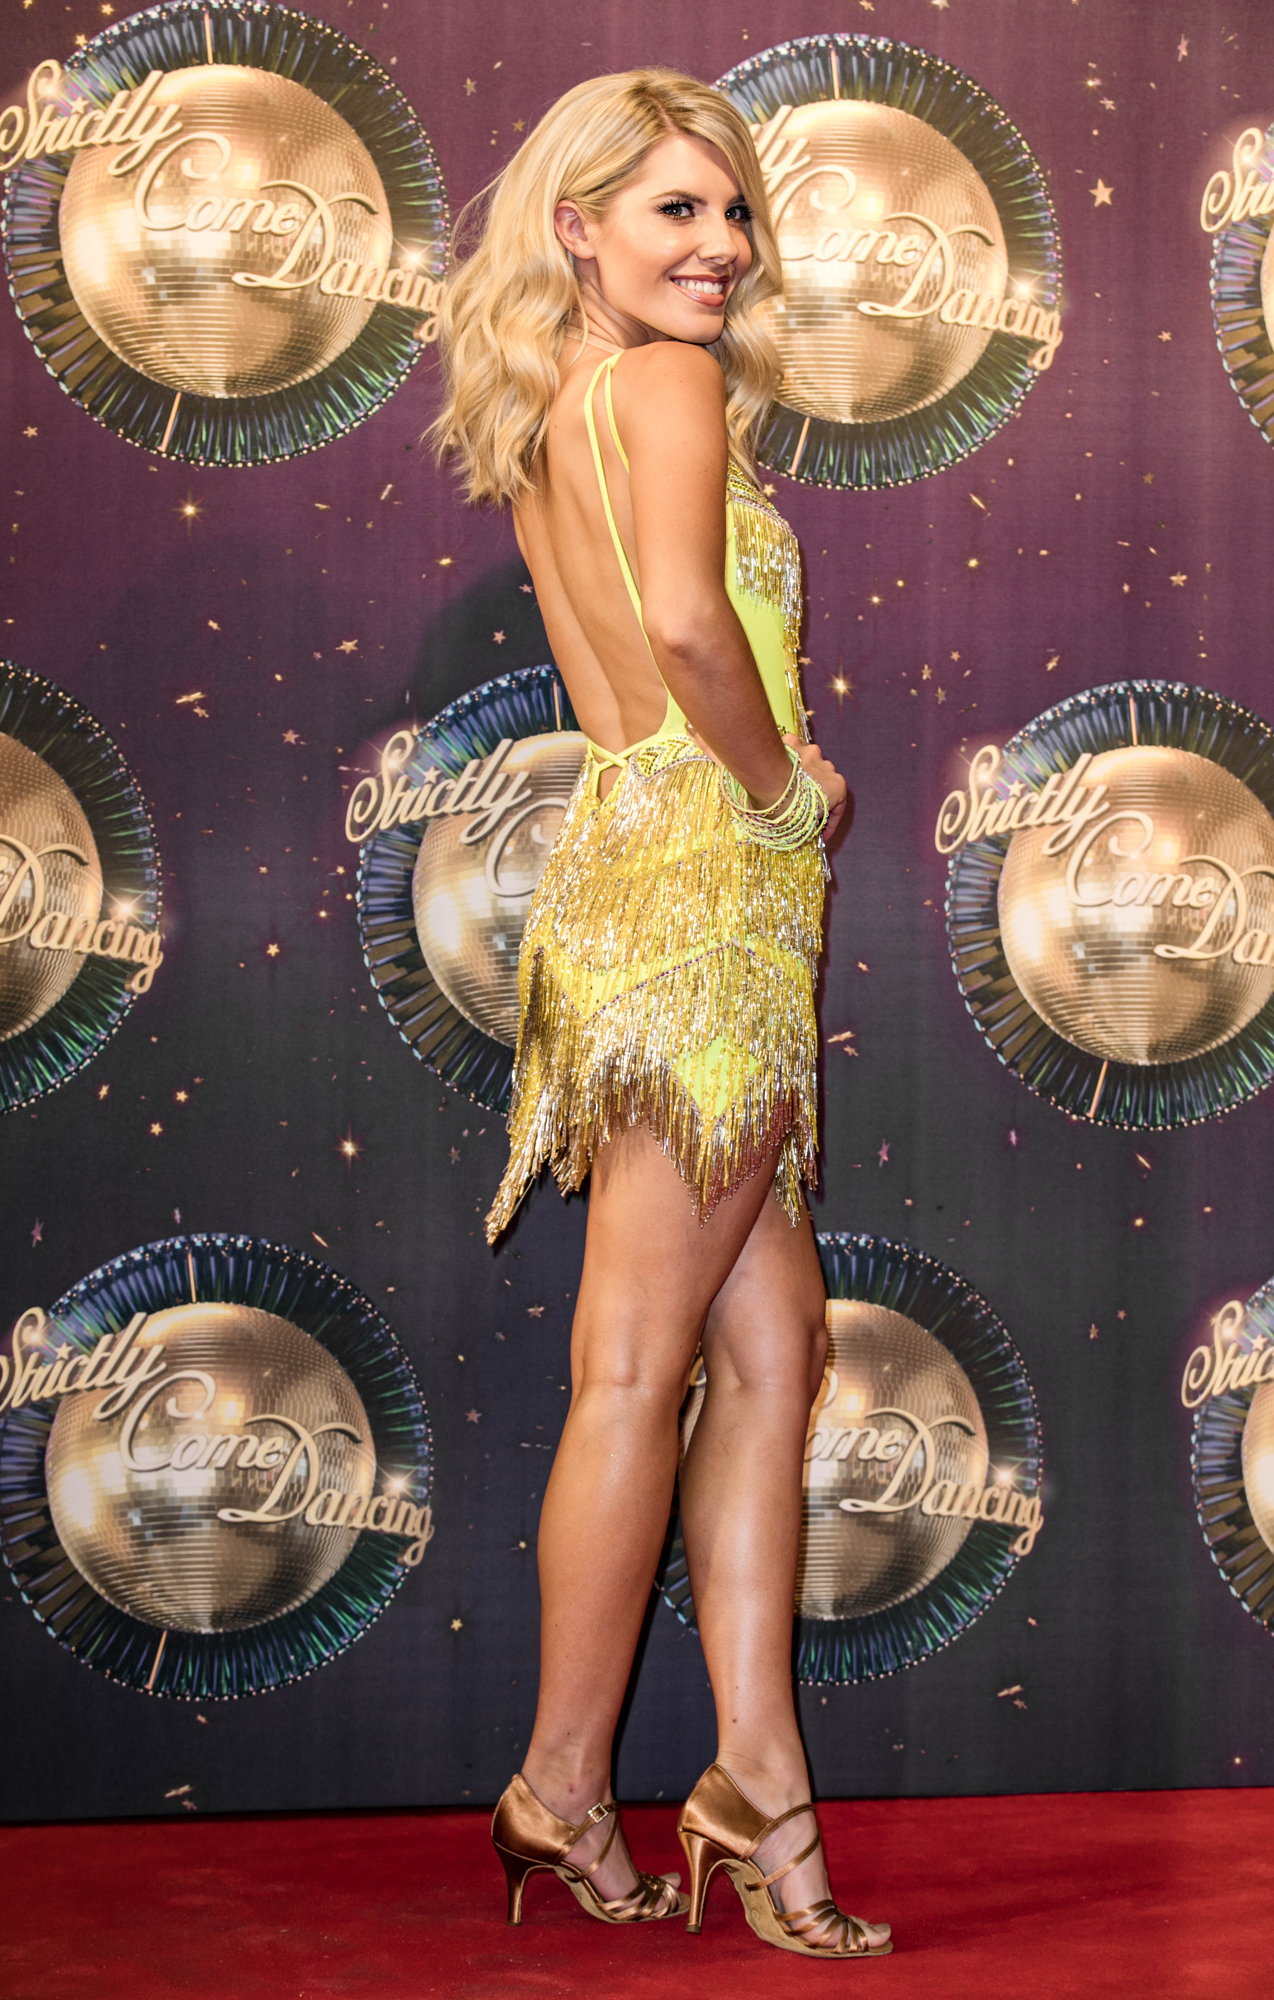 PHT_B5327_strictly_come_dancing_14026.JPG